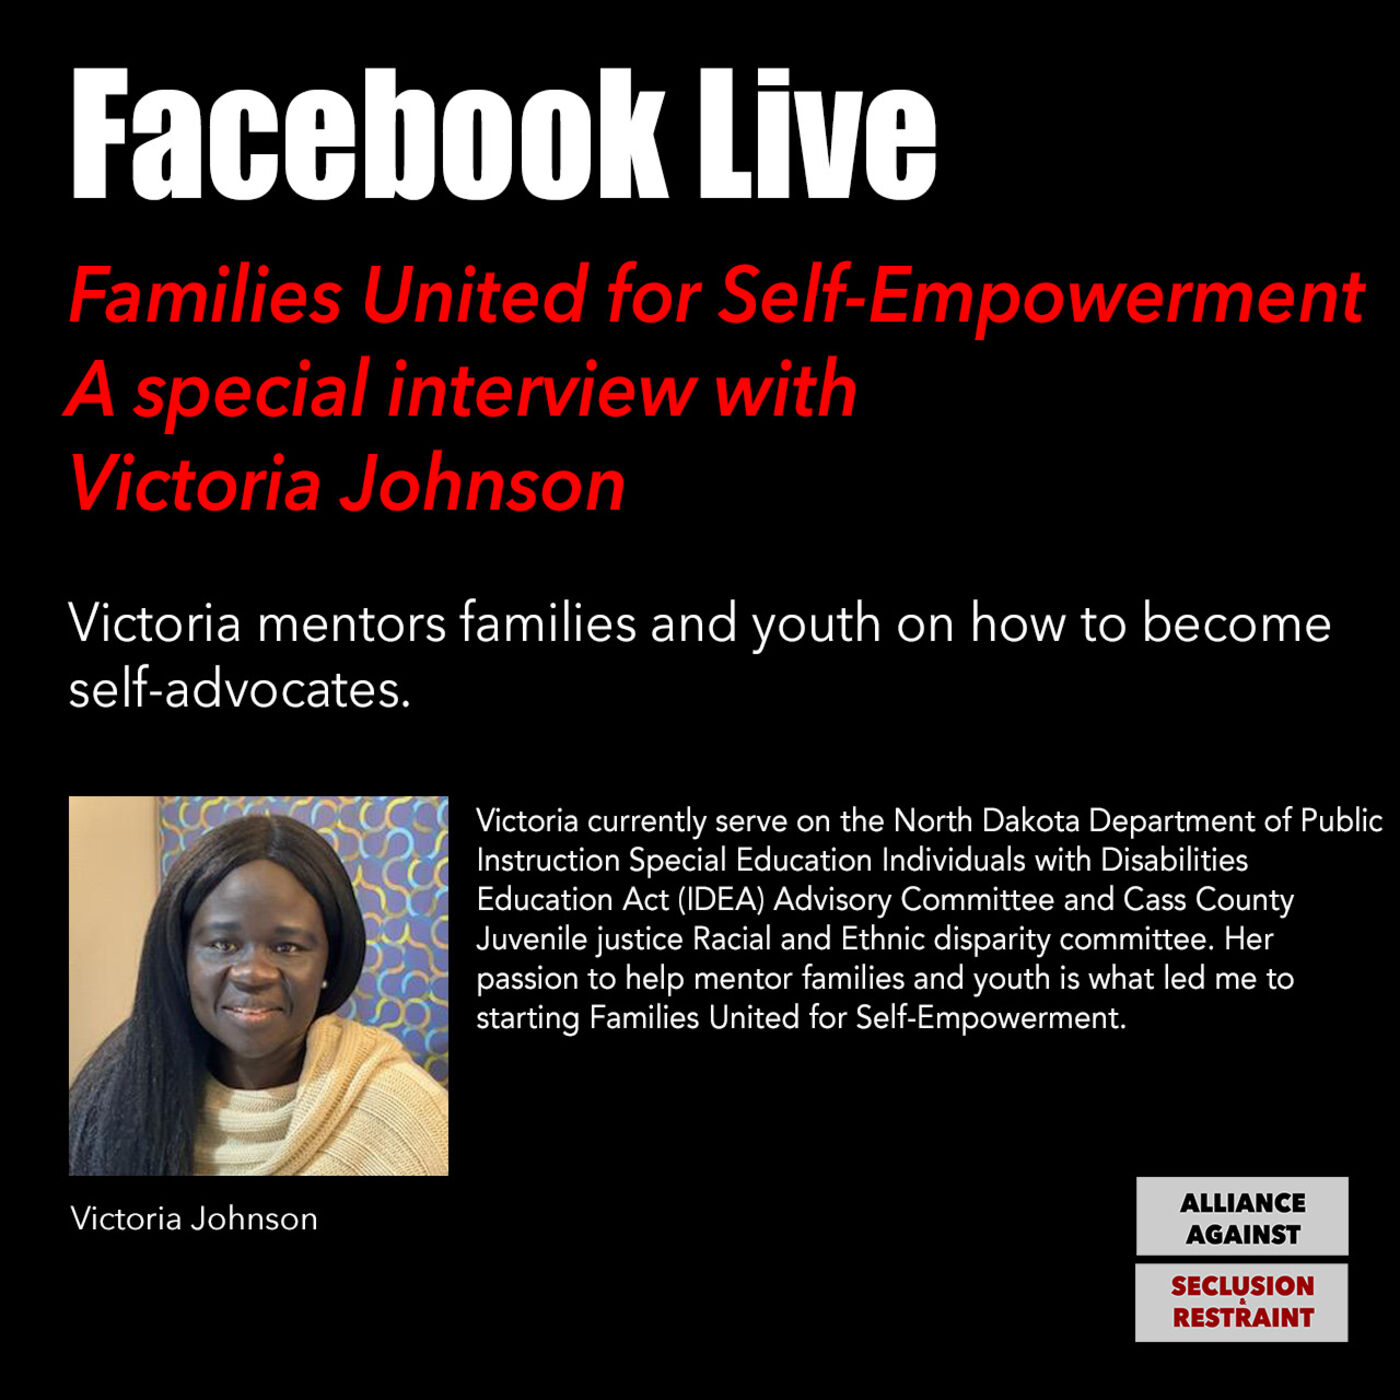 Families United for Self-Empowerment: A special interview with Victoria Johnson